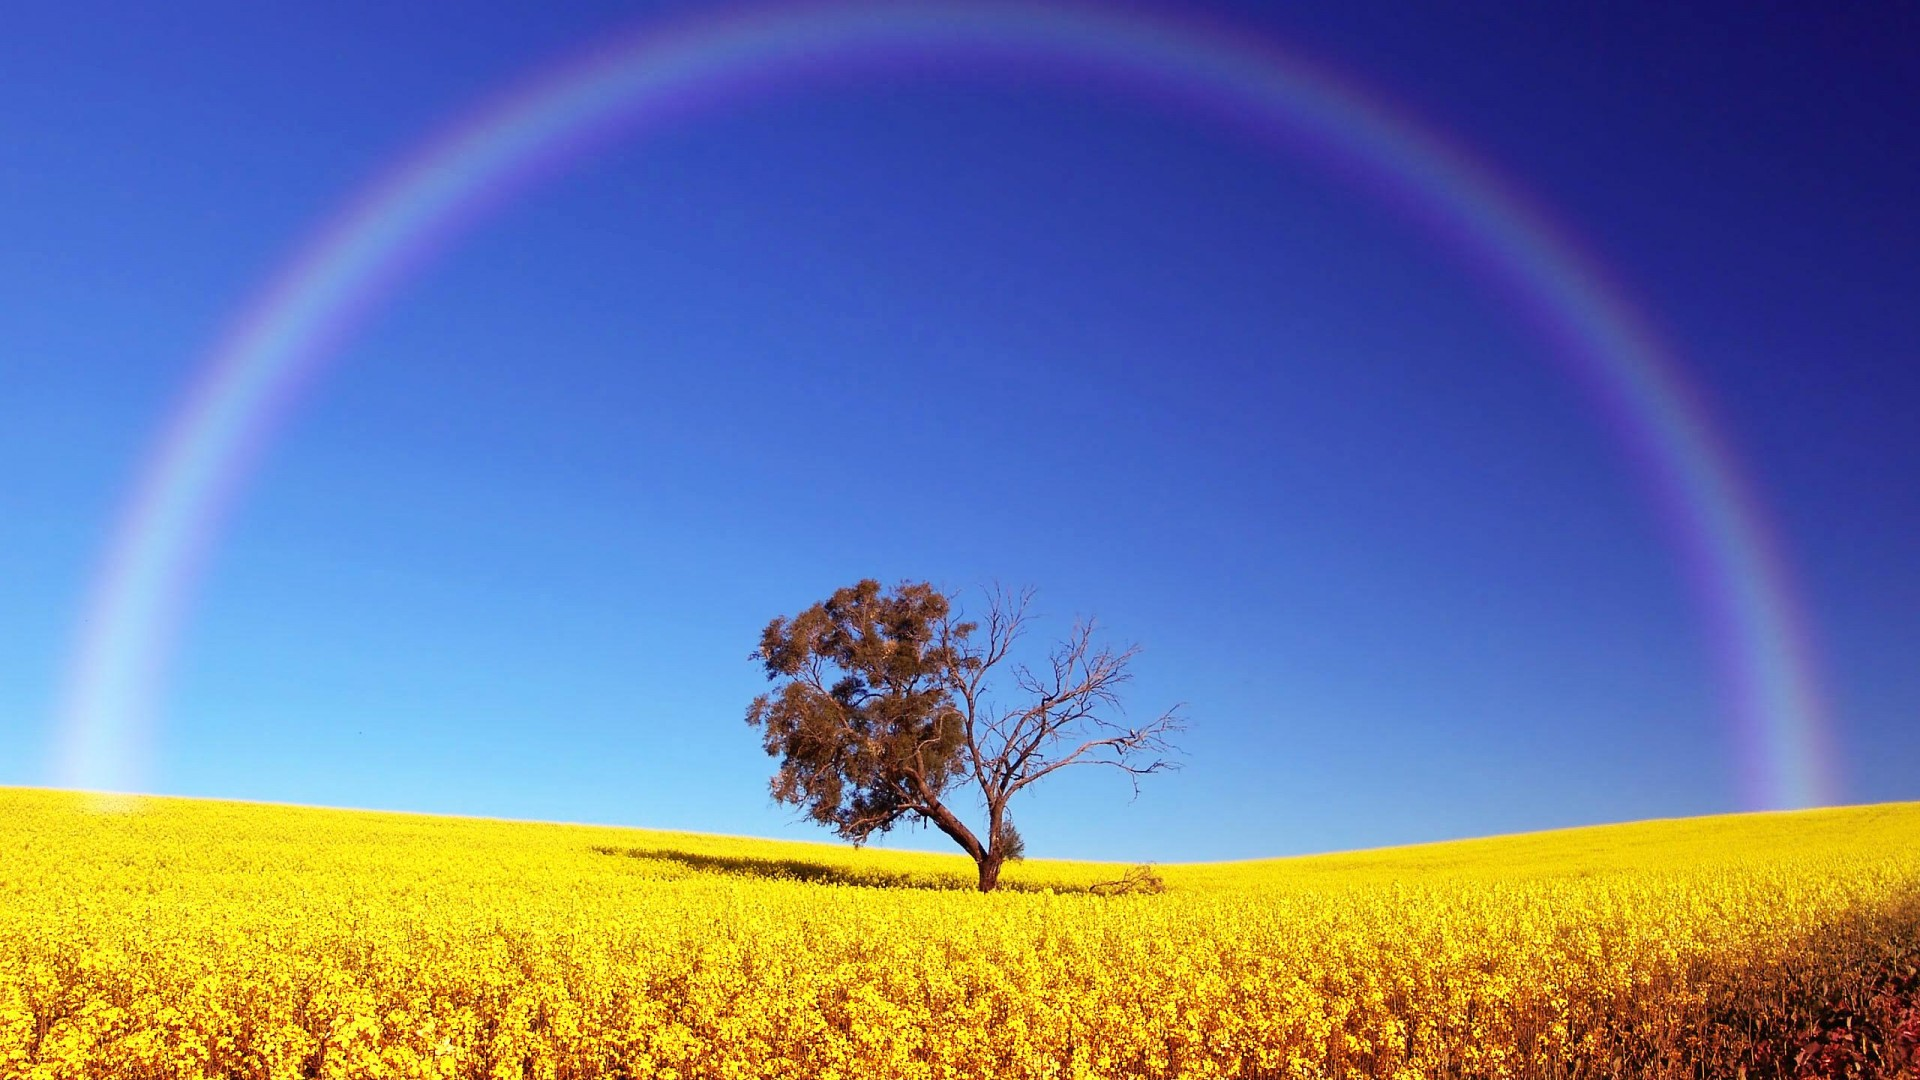 Free Download Rainbow Hd Wallpapers Pictures Images Backgrounds Photos 1920x1080 For Your Desktop Mobile Tablet Explore 49 Free Rainbow Desktop Wallpaper Rainbow Desktop Wallpaper Hd Rainbow Background Wallpaper Beautiful Rainbow Wallpaper